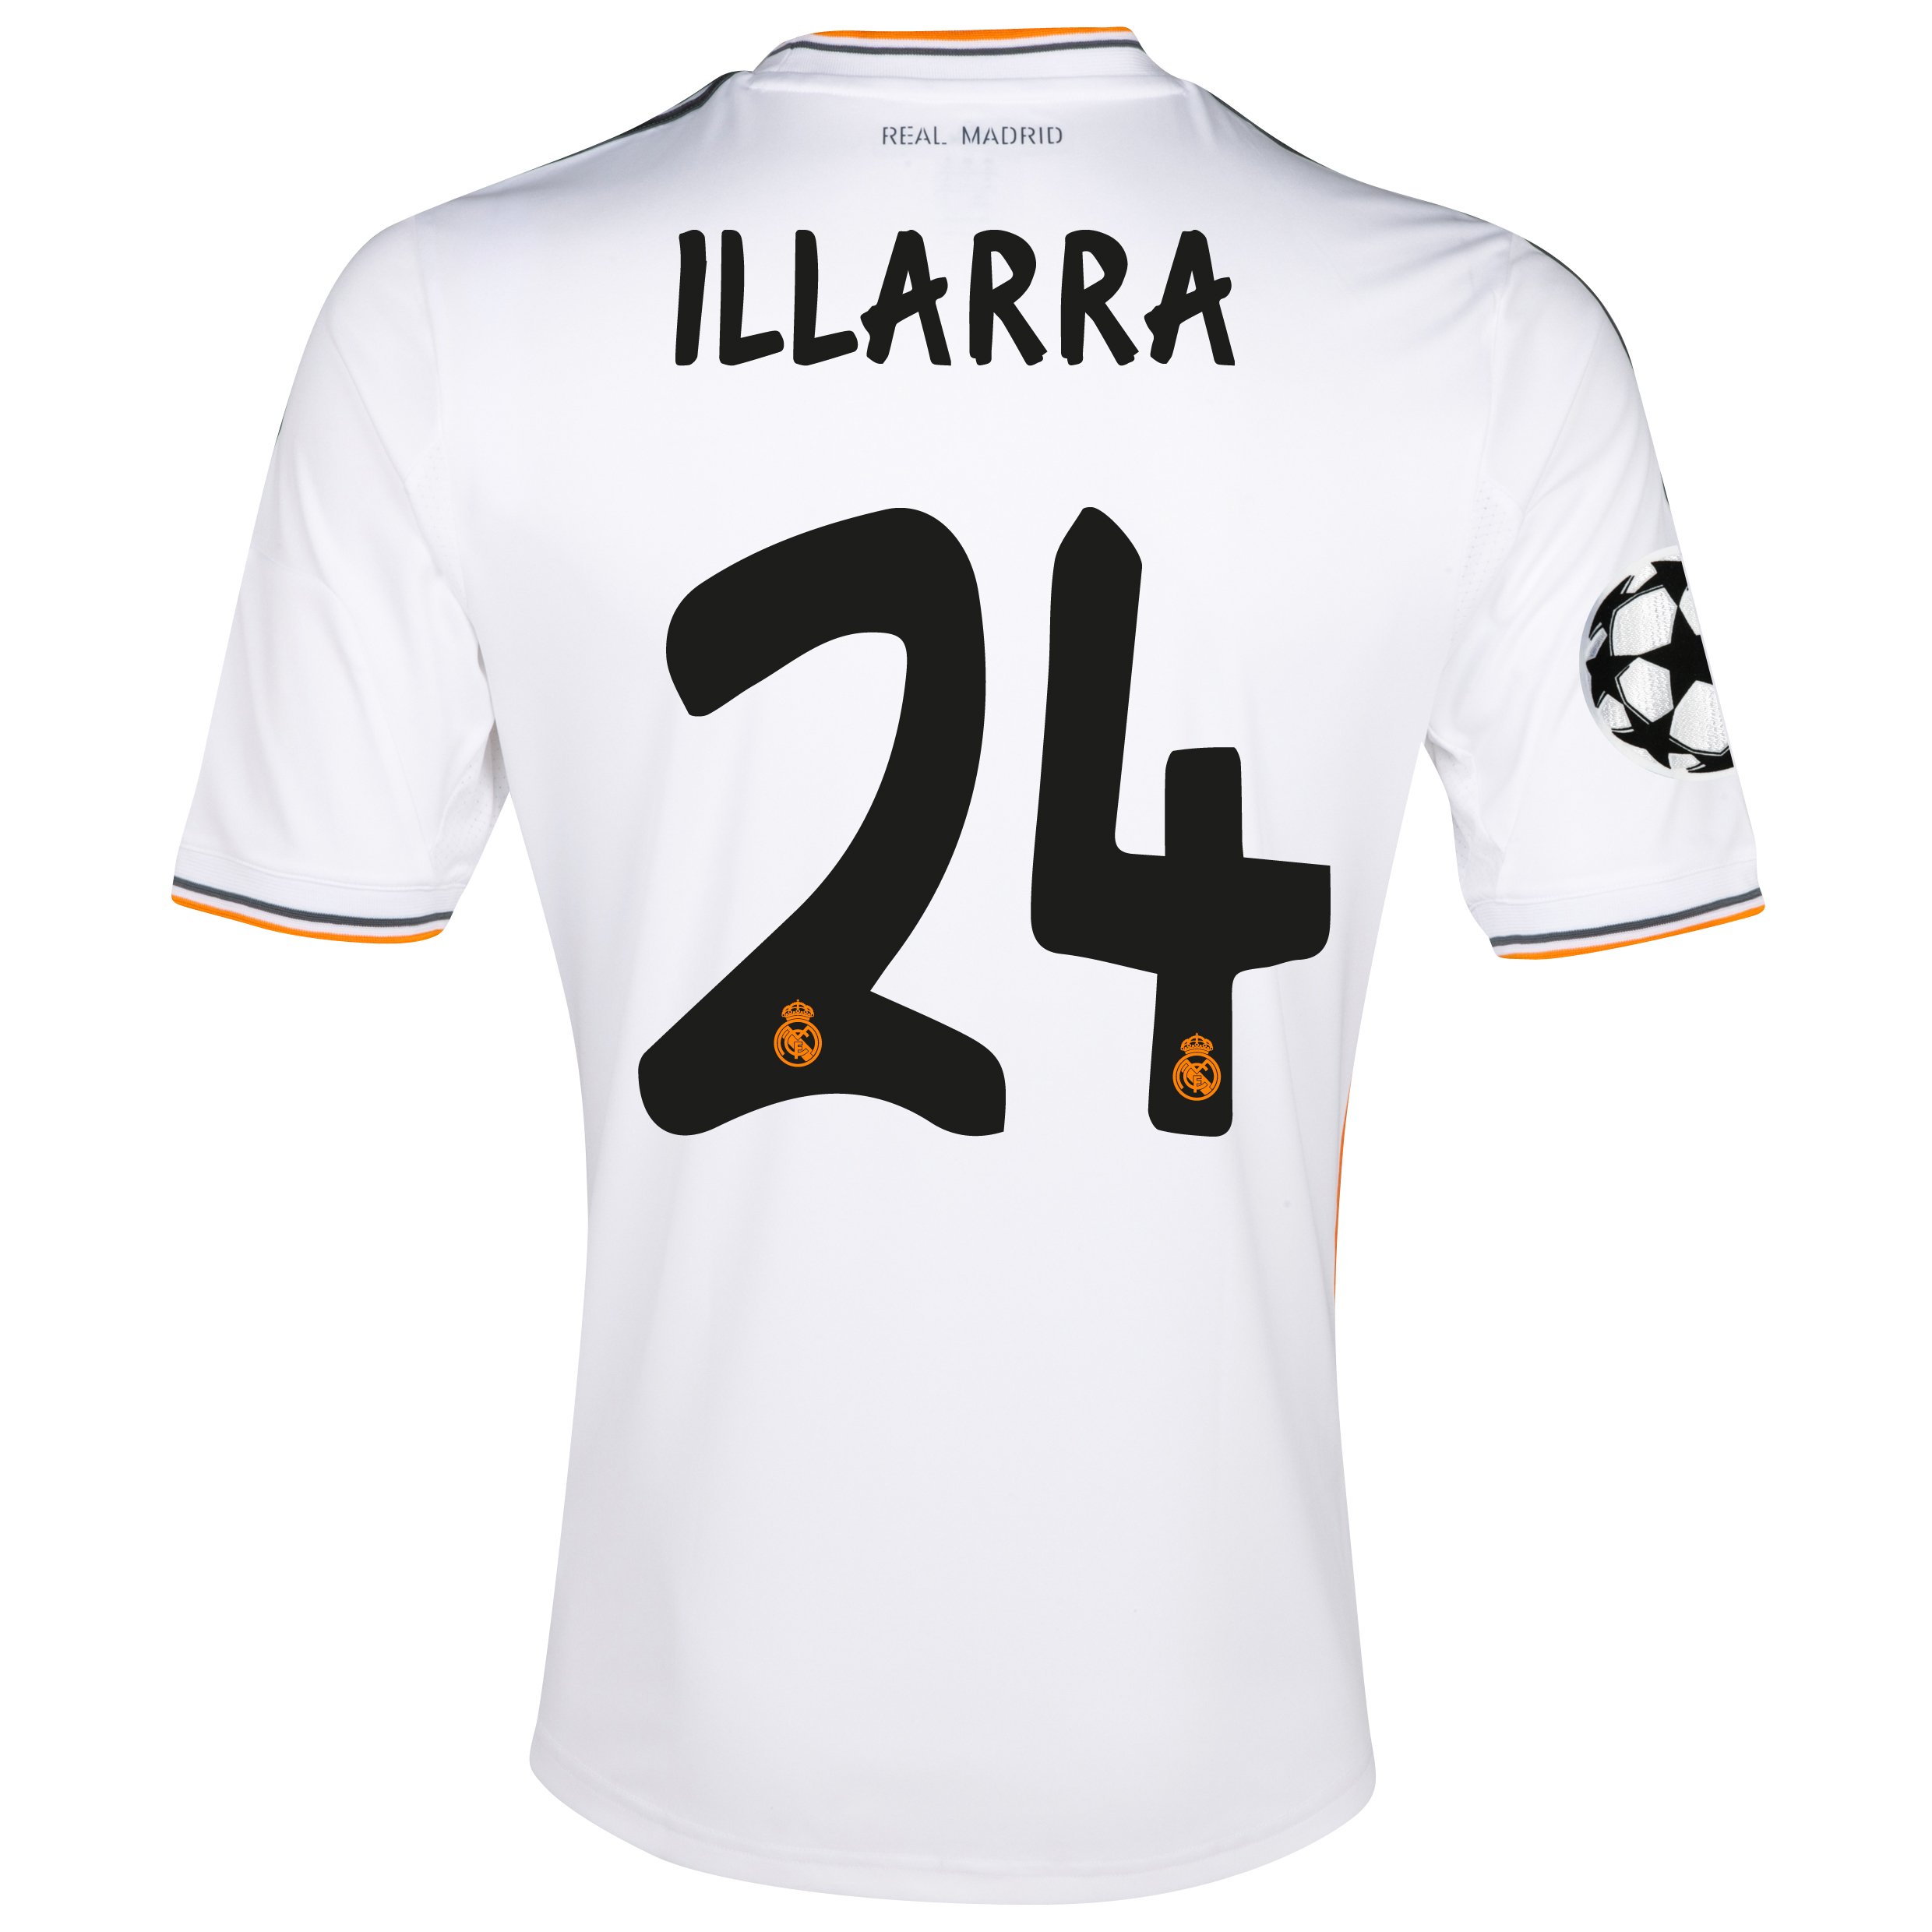 Real Madrid UEFA Champions League Home Shirt 2013/14 with Illarra 24 printing